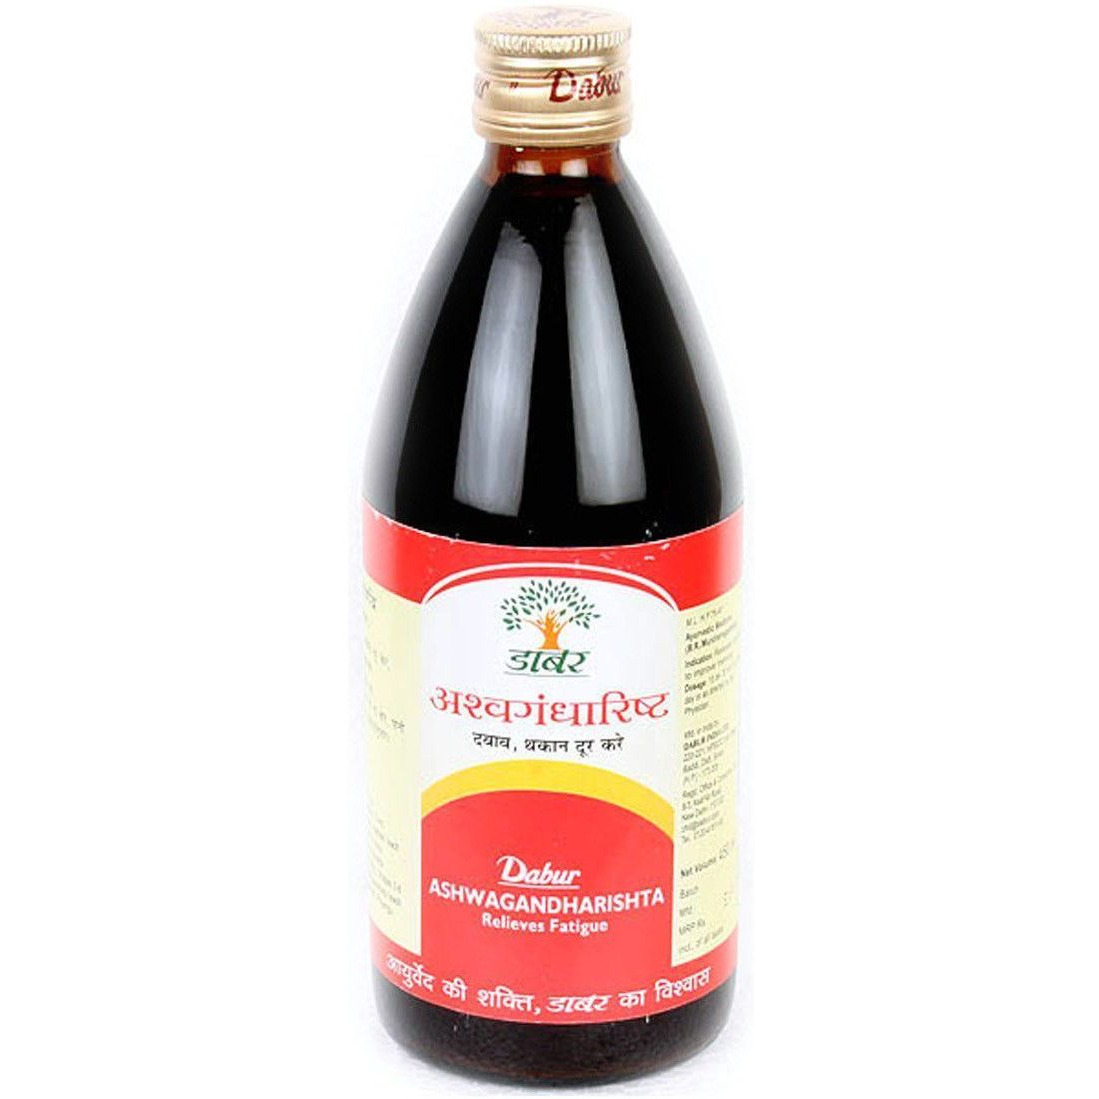 100% Natural & Pure Dabur Ashwagandharishta Syrup Relieves Fatigue - 450ml (Size:PACK OF 01)